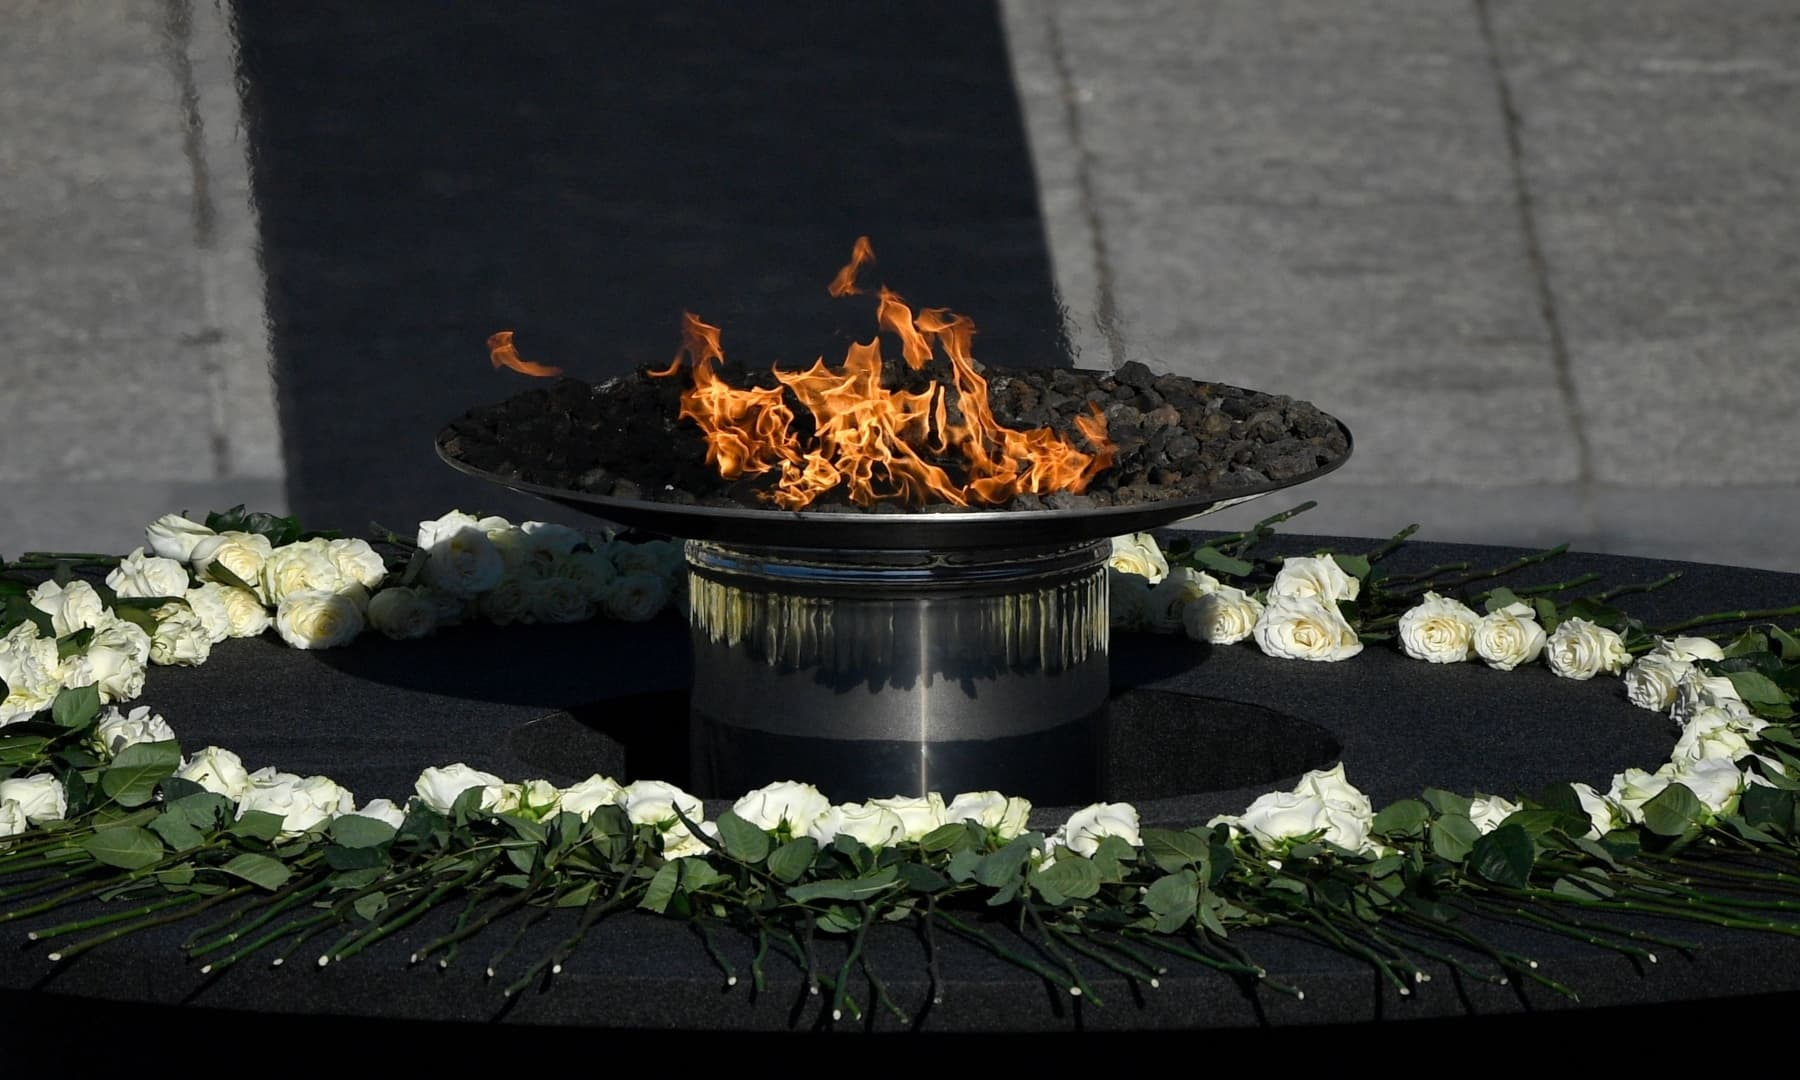 A flame burns on a cauldron surrounded by white roses during a state ceremony to honour the 28,400 victims of the coronavirus crisis as well as those public servants who have been fighting on the front line against the pandemic in Spain. — AFP